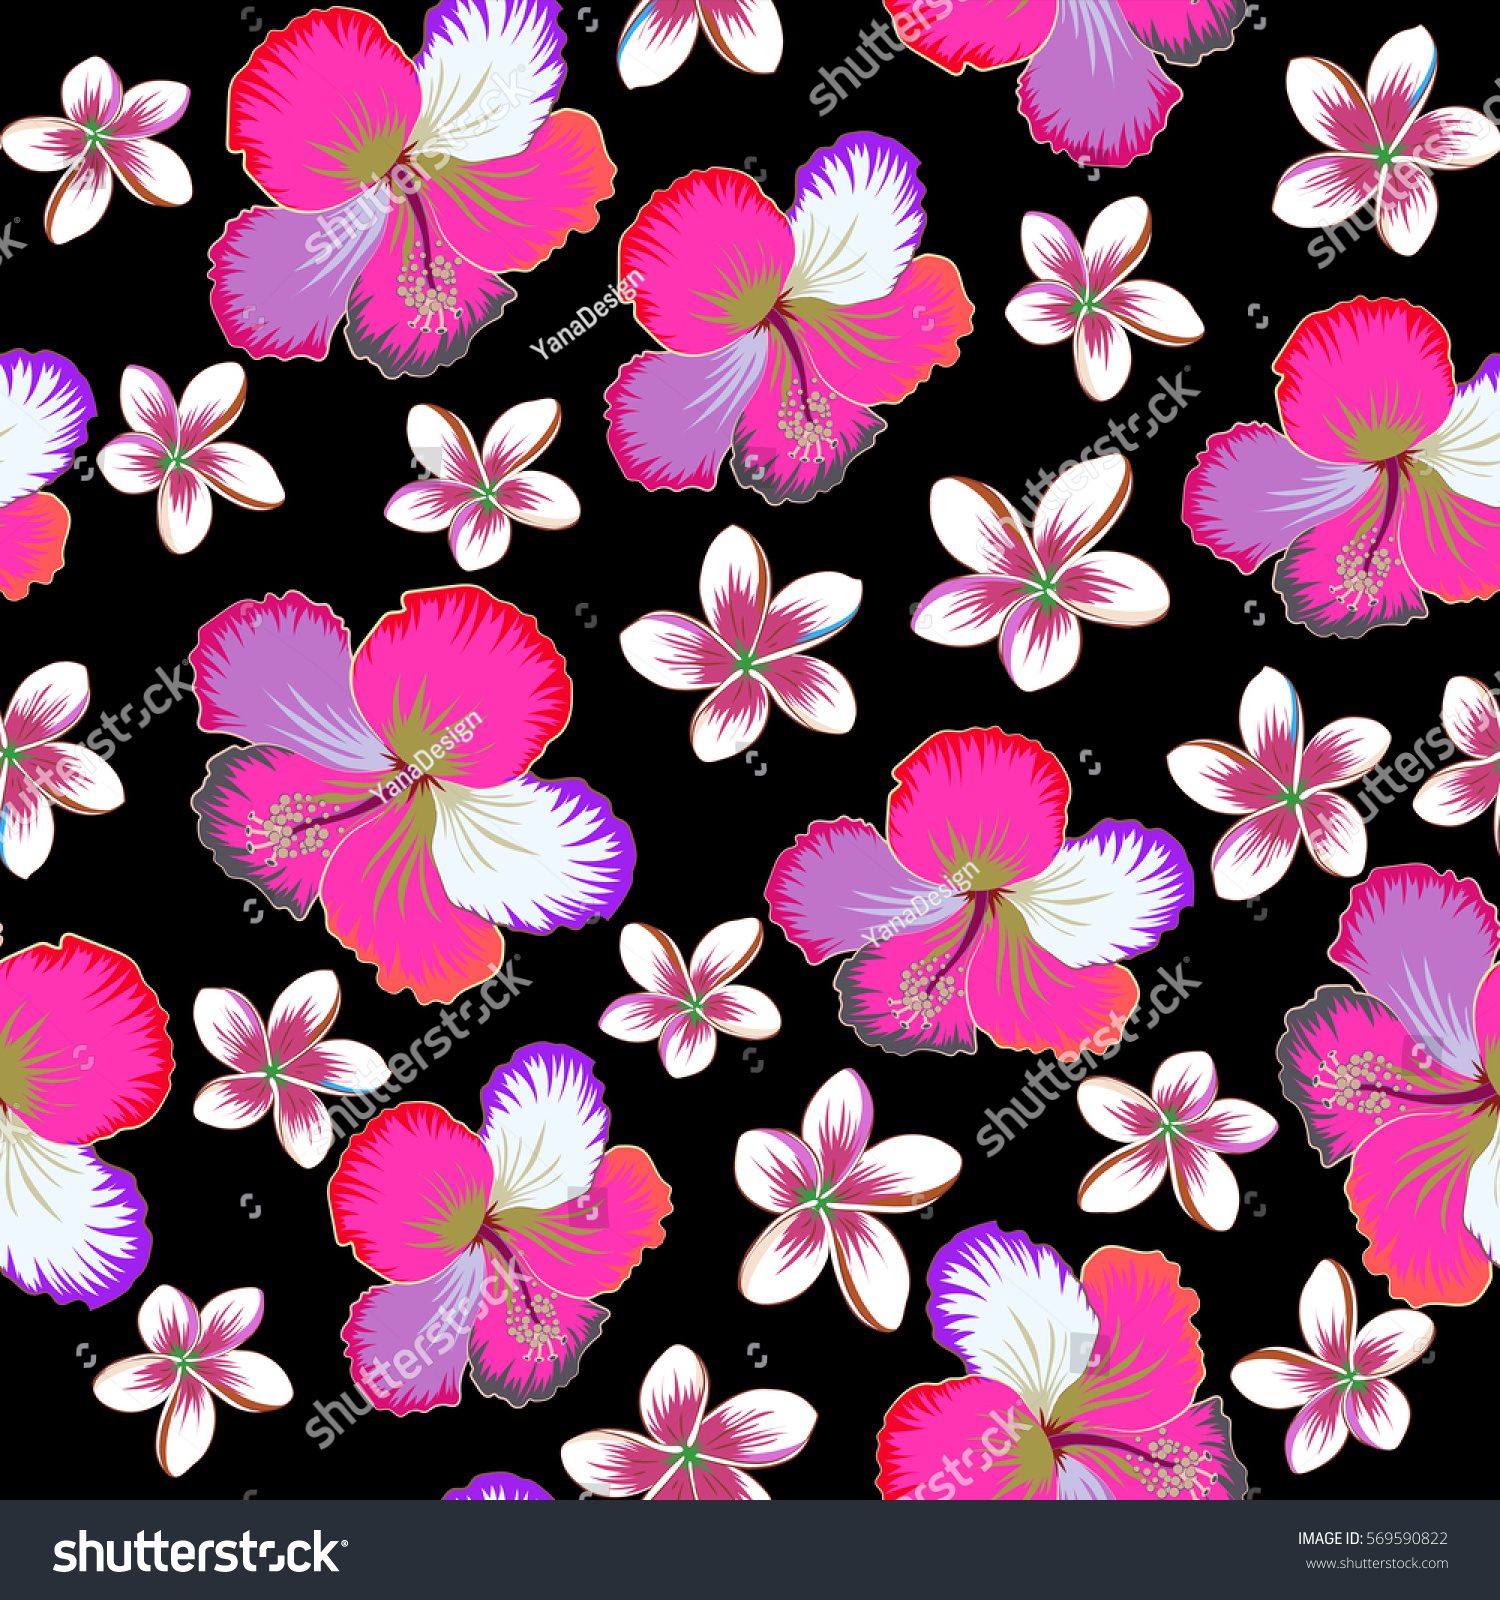 Hibiscus Floral Pattern Floral Seamless Pattern With Hibiscus